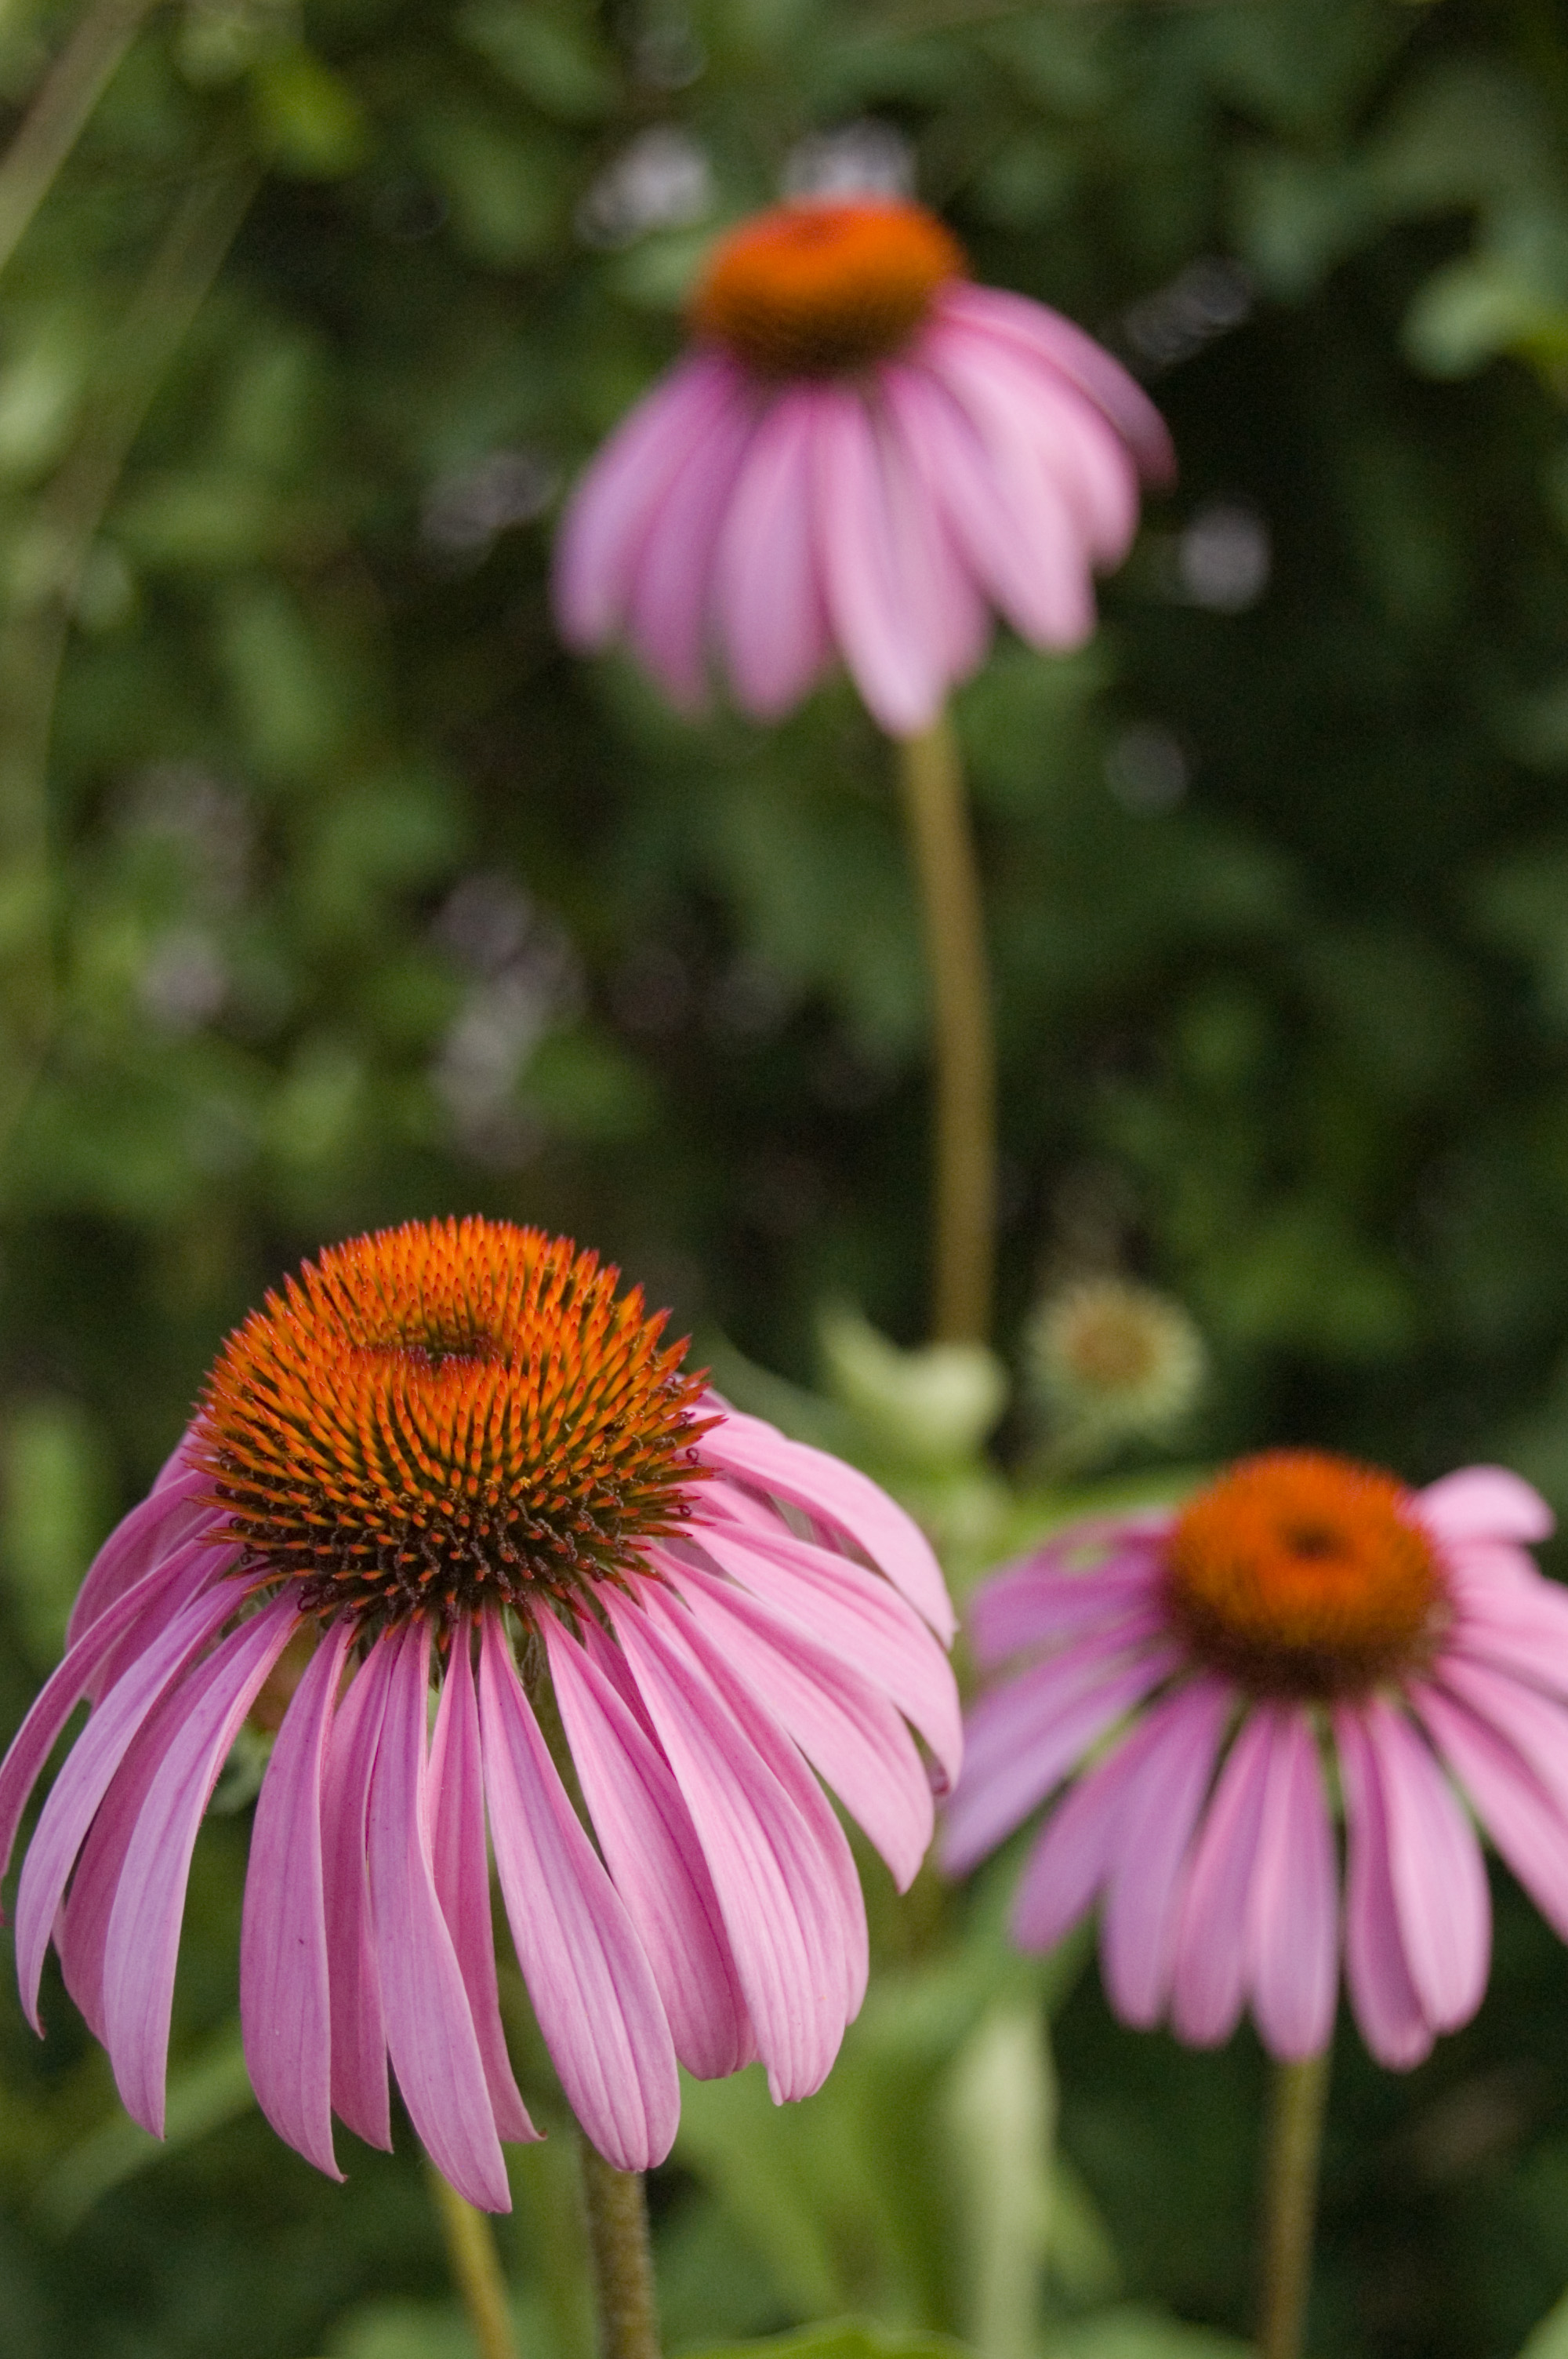 Echinacea / purple cone flower